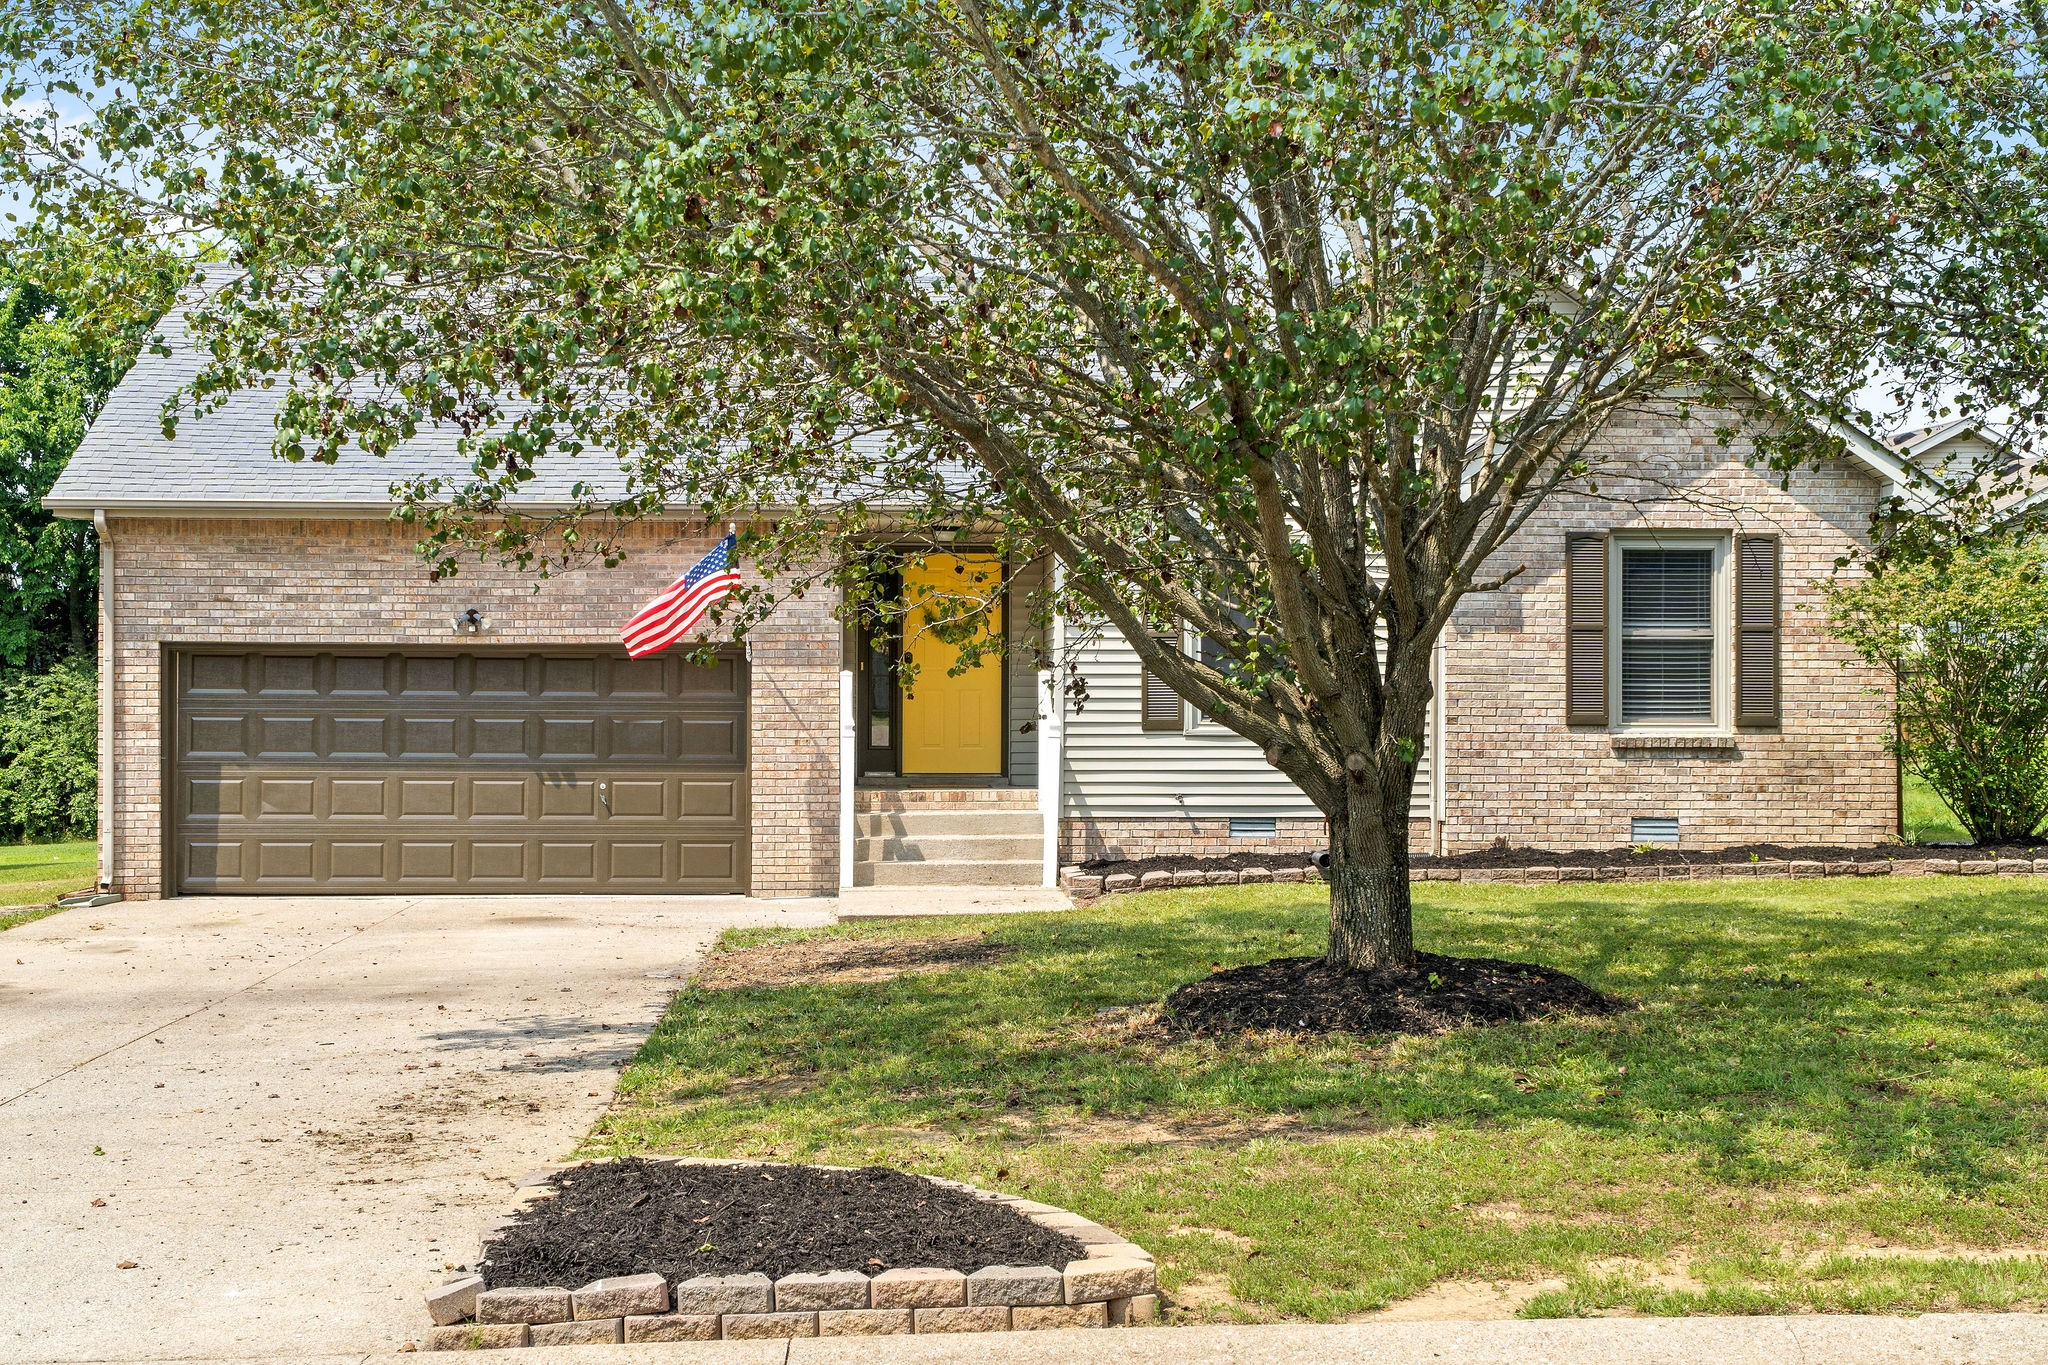 WELCOME HOME to Cute Ranch Style Home Conveniently Located off Trenton Road area - NEW Paint - NEW Carpet - Updated Fixtures - All Stainless Steel Kitchen Appliances Convey - Freshly Stained Deck is Perfect for Entertaining & Enjoying the Oversized Backyard - MUST SEE!